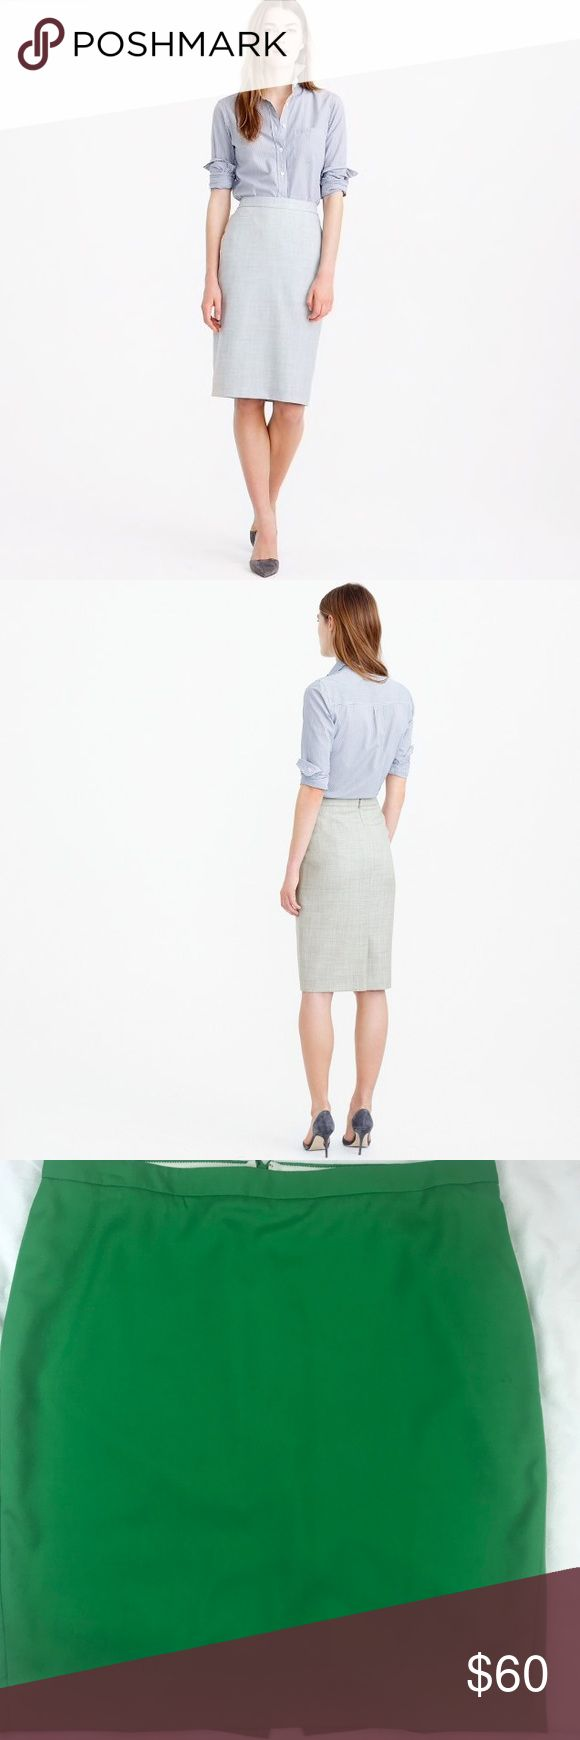 "J. CREW No. 2 Pencil Skirt Super 120s Wool Green J. CREW No. 2 Pencil Skirt Super 120s Wool Green  Classic pencil skirt made from our signature four season Super 120s merino wool. 120 is the finest fiber with silky smooth finish and refined drape. Back vent with concealed zipper. Lined in stretch fabric.   100% wool DRY CLEAN  Length 22 3/4"", waist 18 1/2"" J. Crew Skirts Pencil"